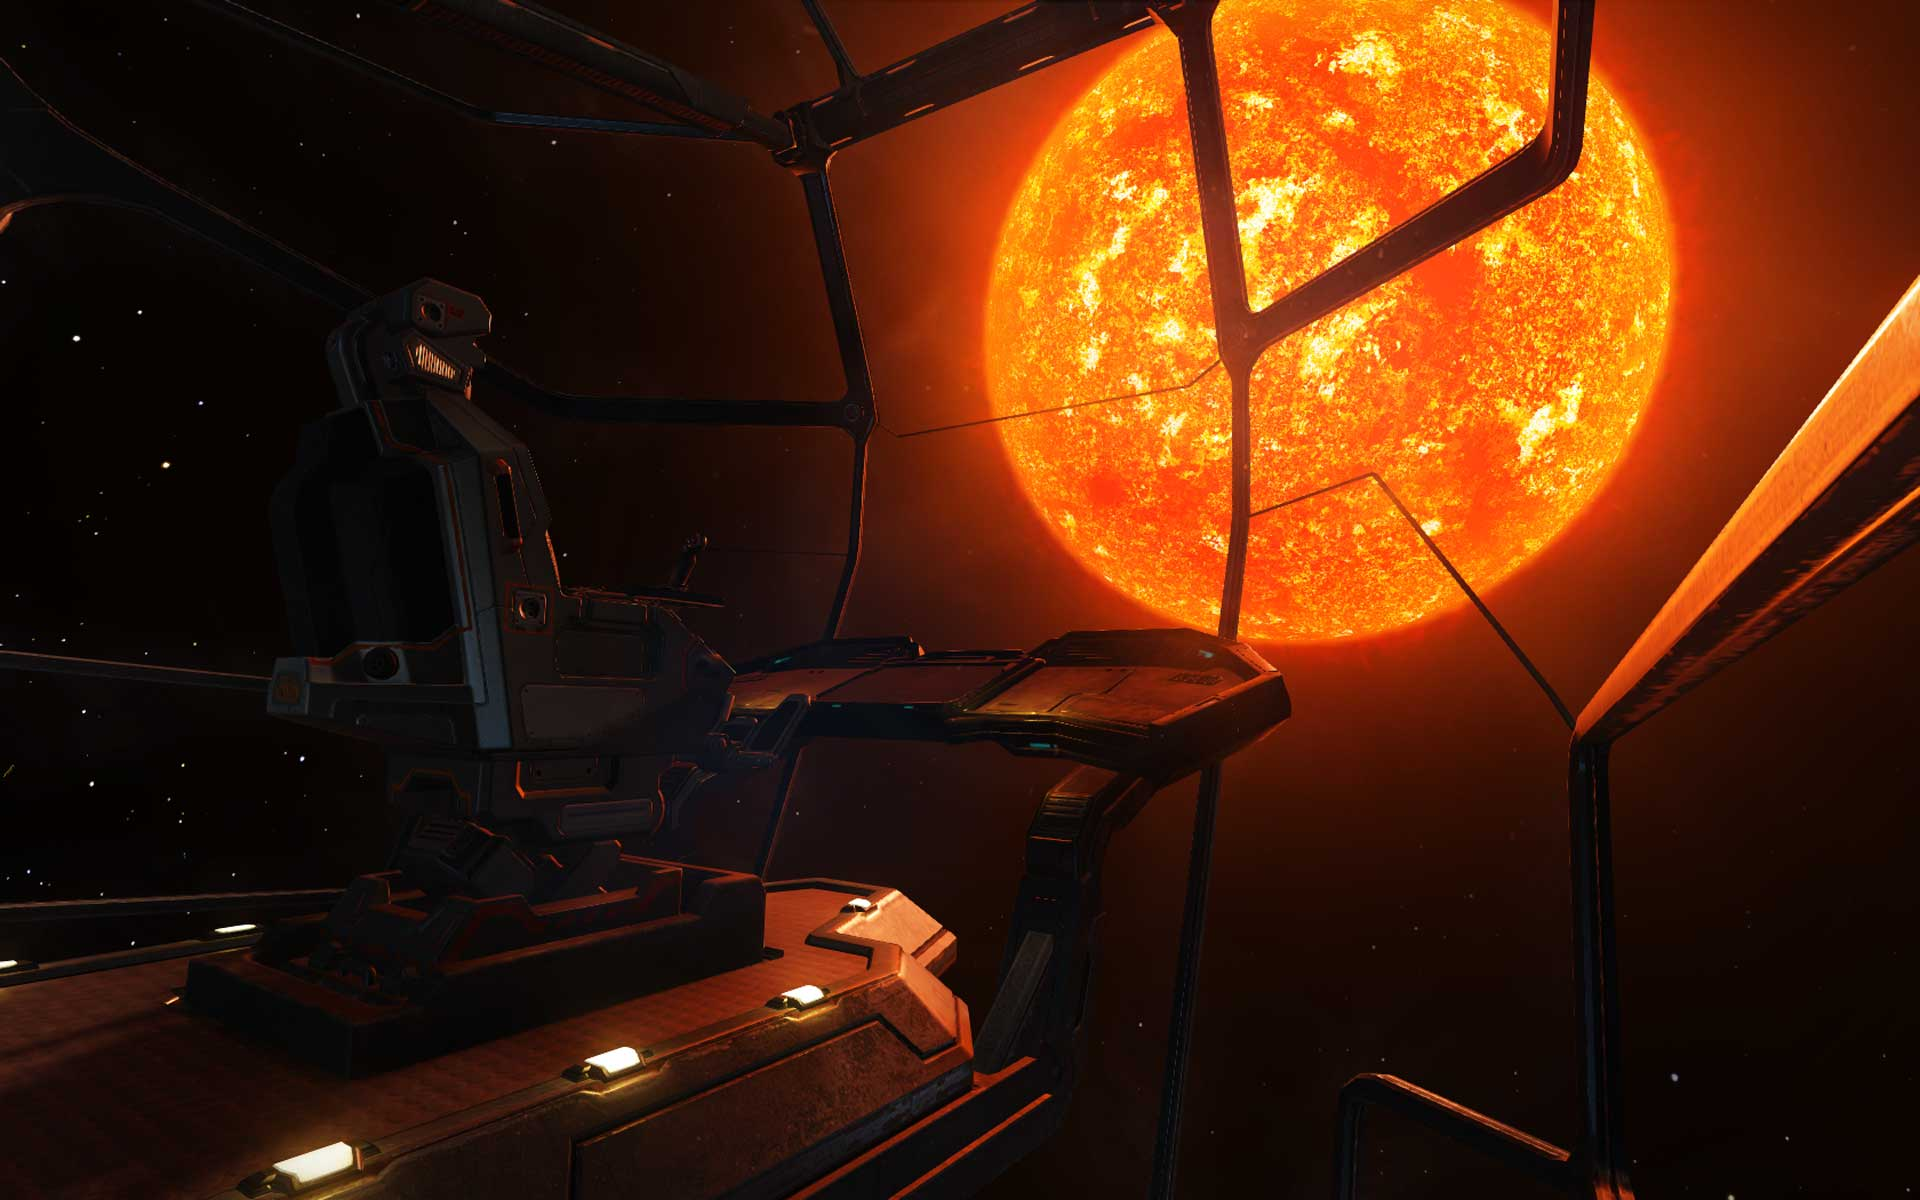 Fall Desktop Wallpaper Widescreen Elite Dangerous Full Hd Wallpaper And Background Image